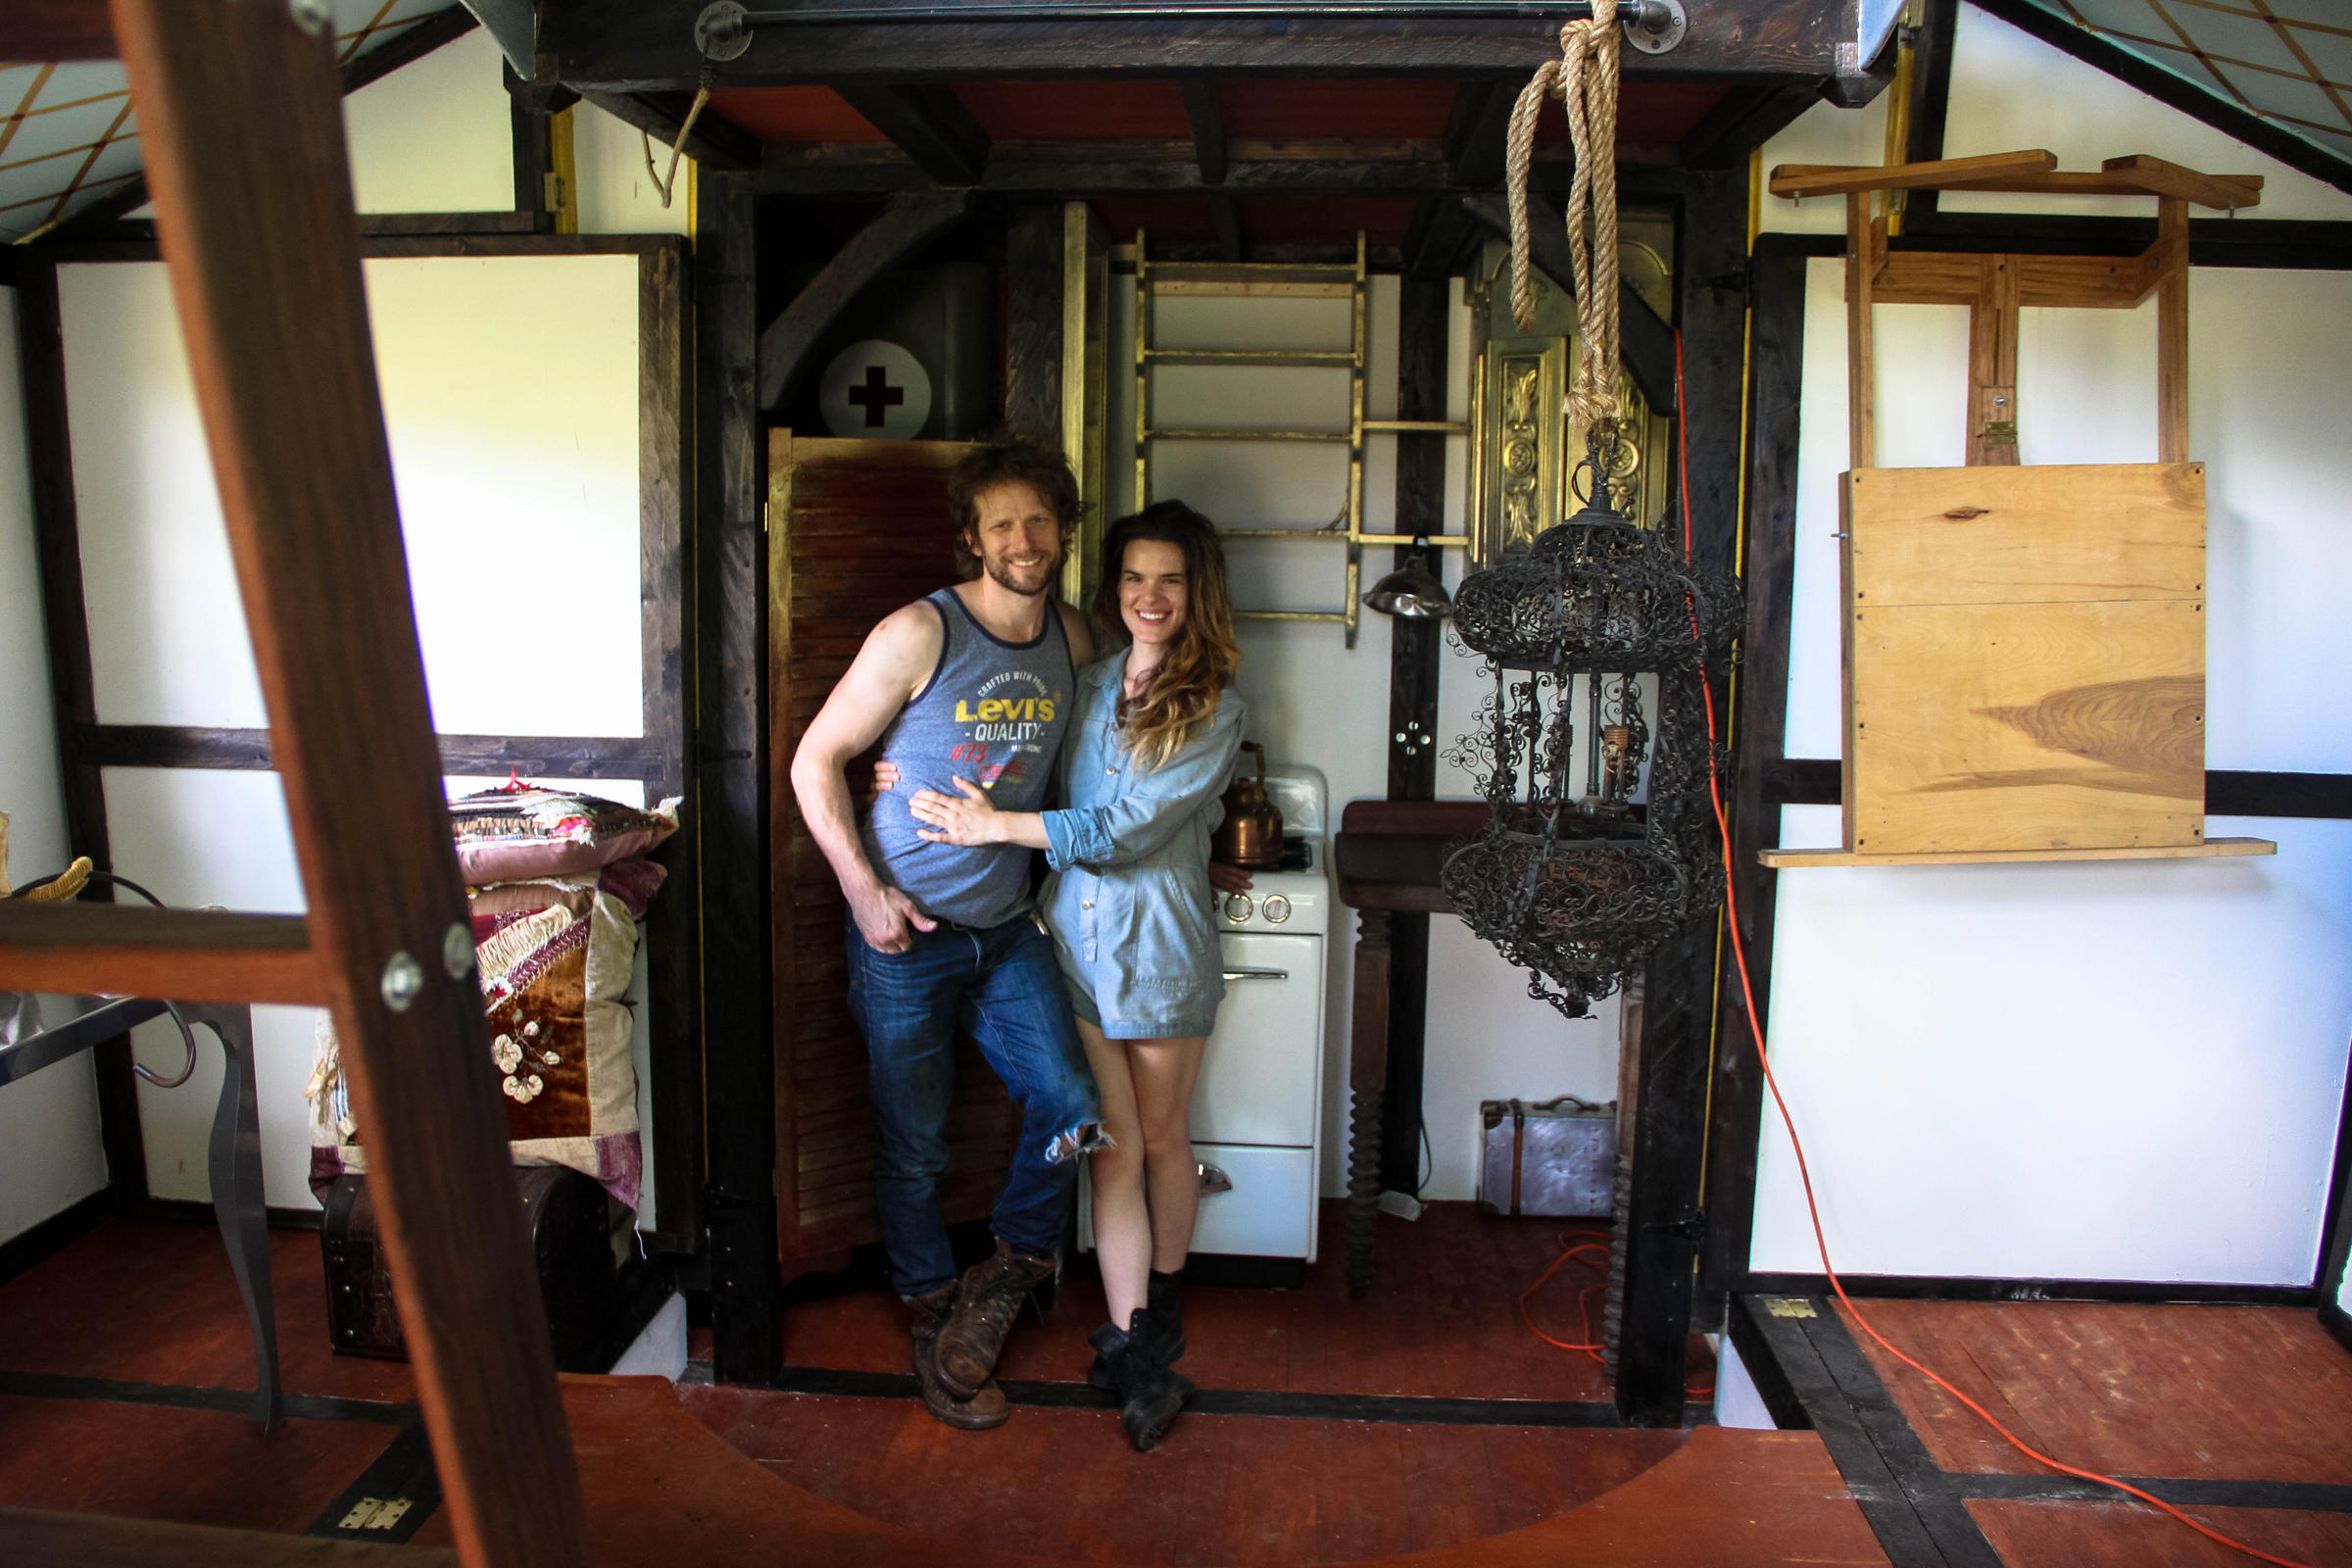 Steampunk Steamer Trunk - A Tiny House Contraption on Wheels | New